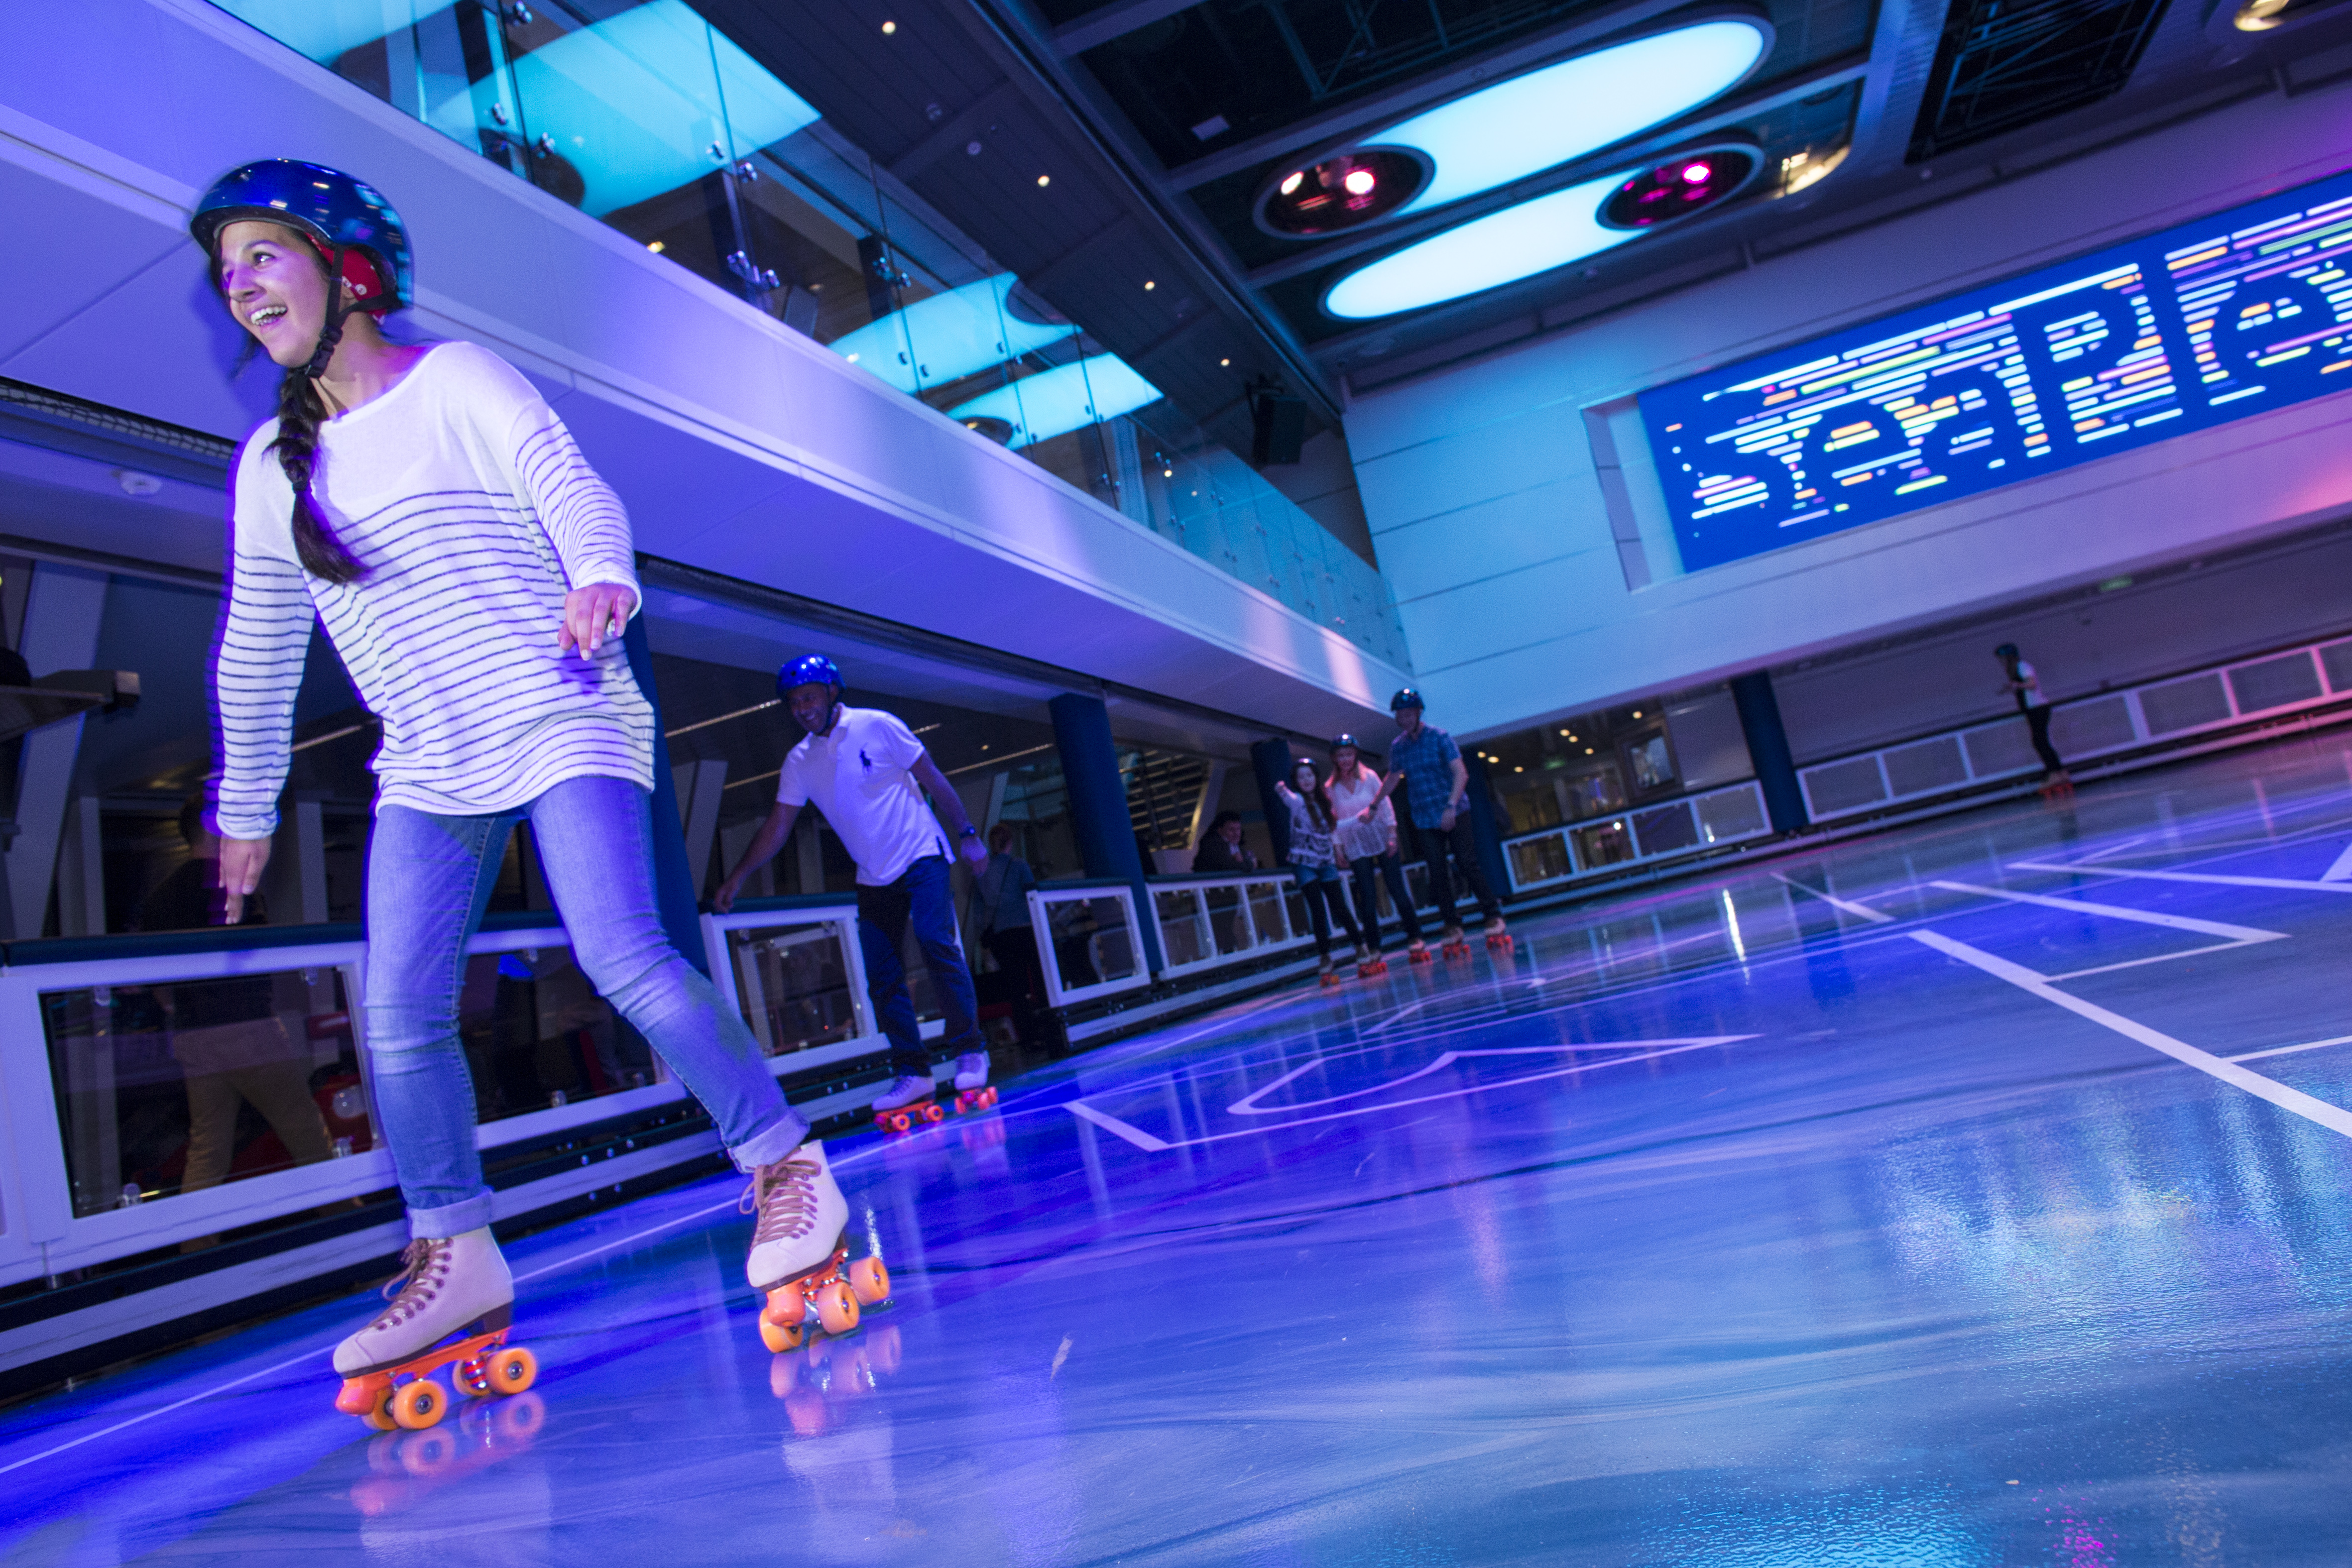 Royal Caribbean Anthem of the Seas Interior Seaplex Rollerskating 1.jpg